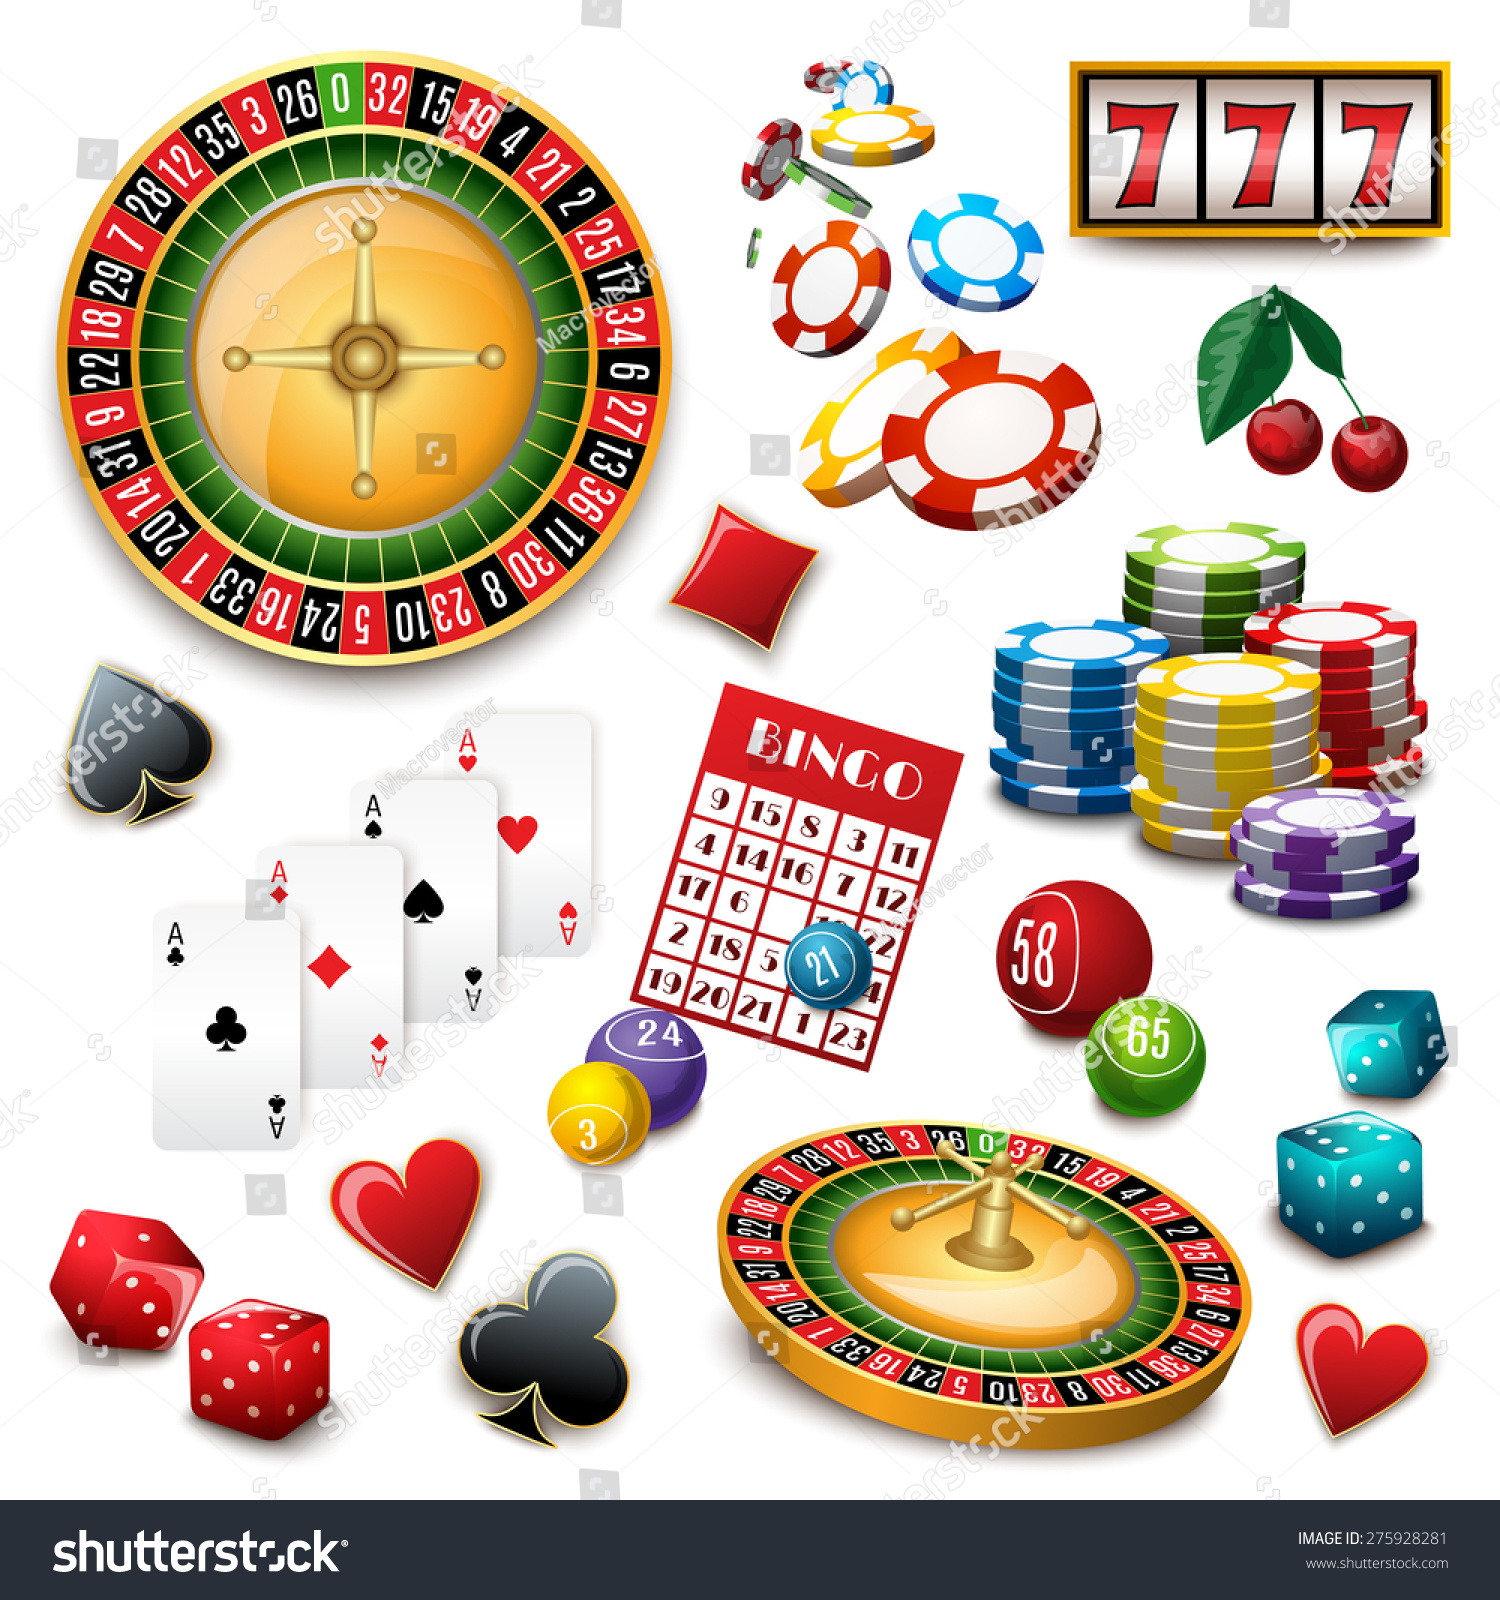 casino online spiele the symbol of ra